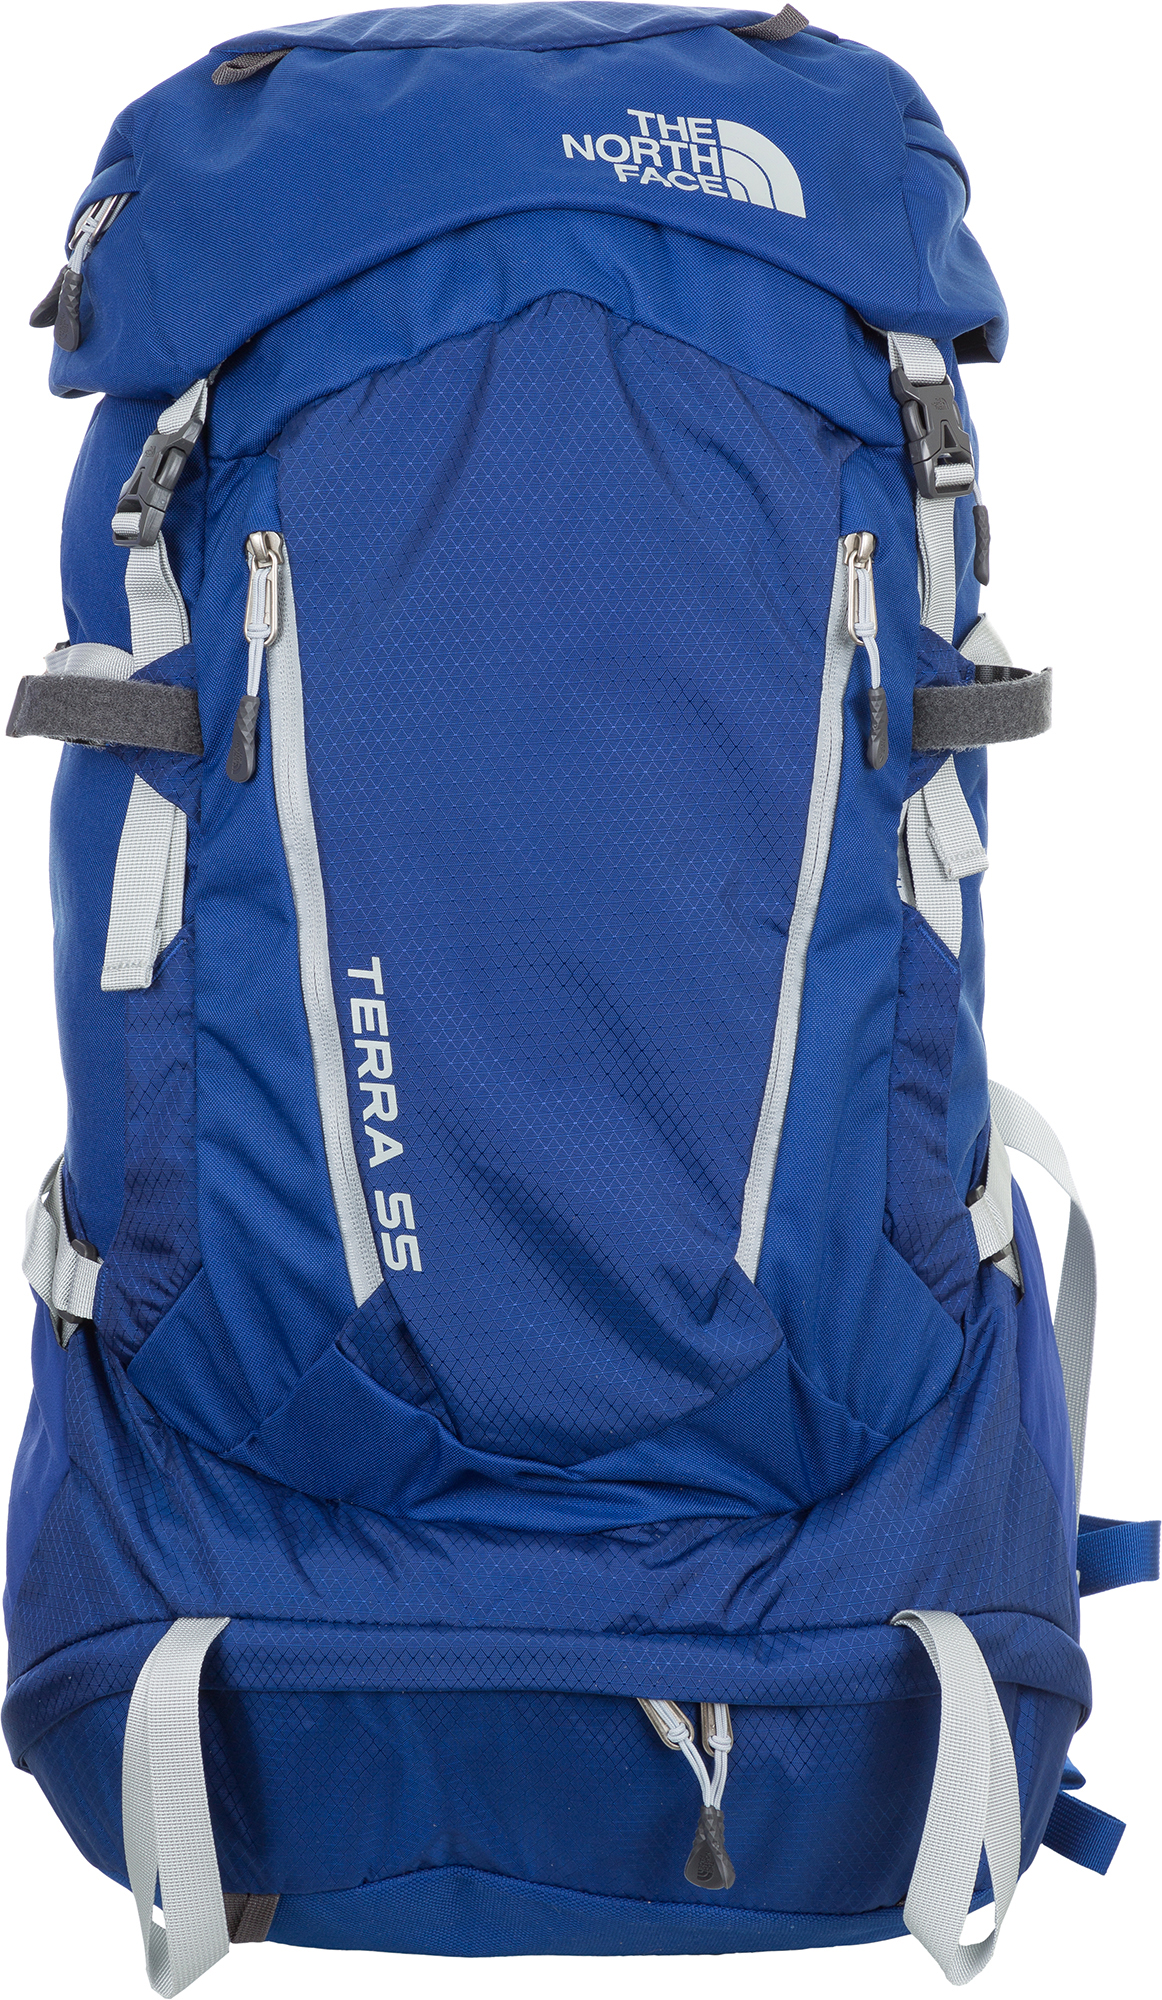 The North Face The North Face Terra 55, размер XS/S